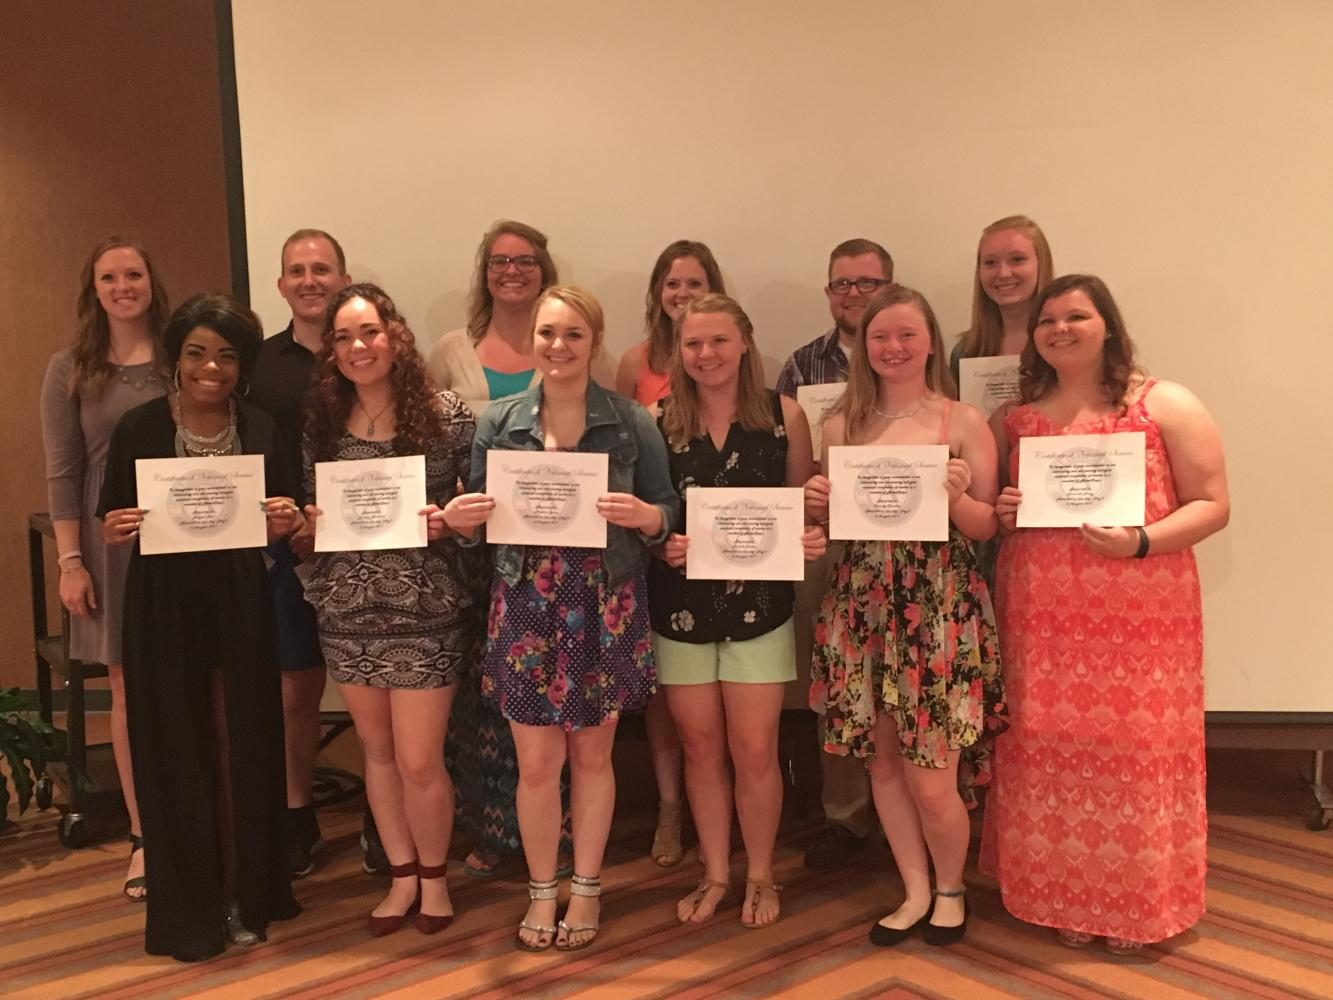 Students and Community Members Are Recognized for Their Service to Others